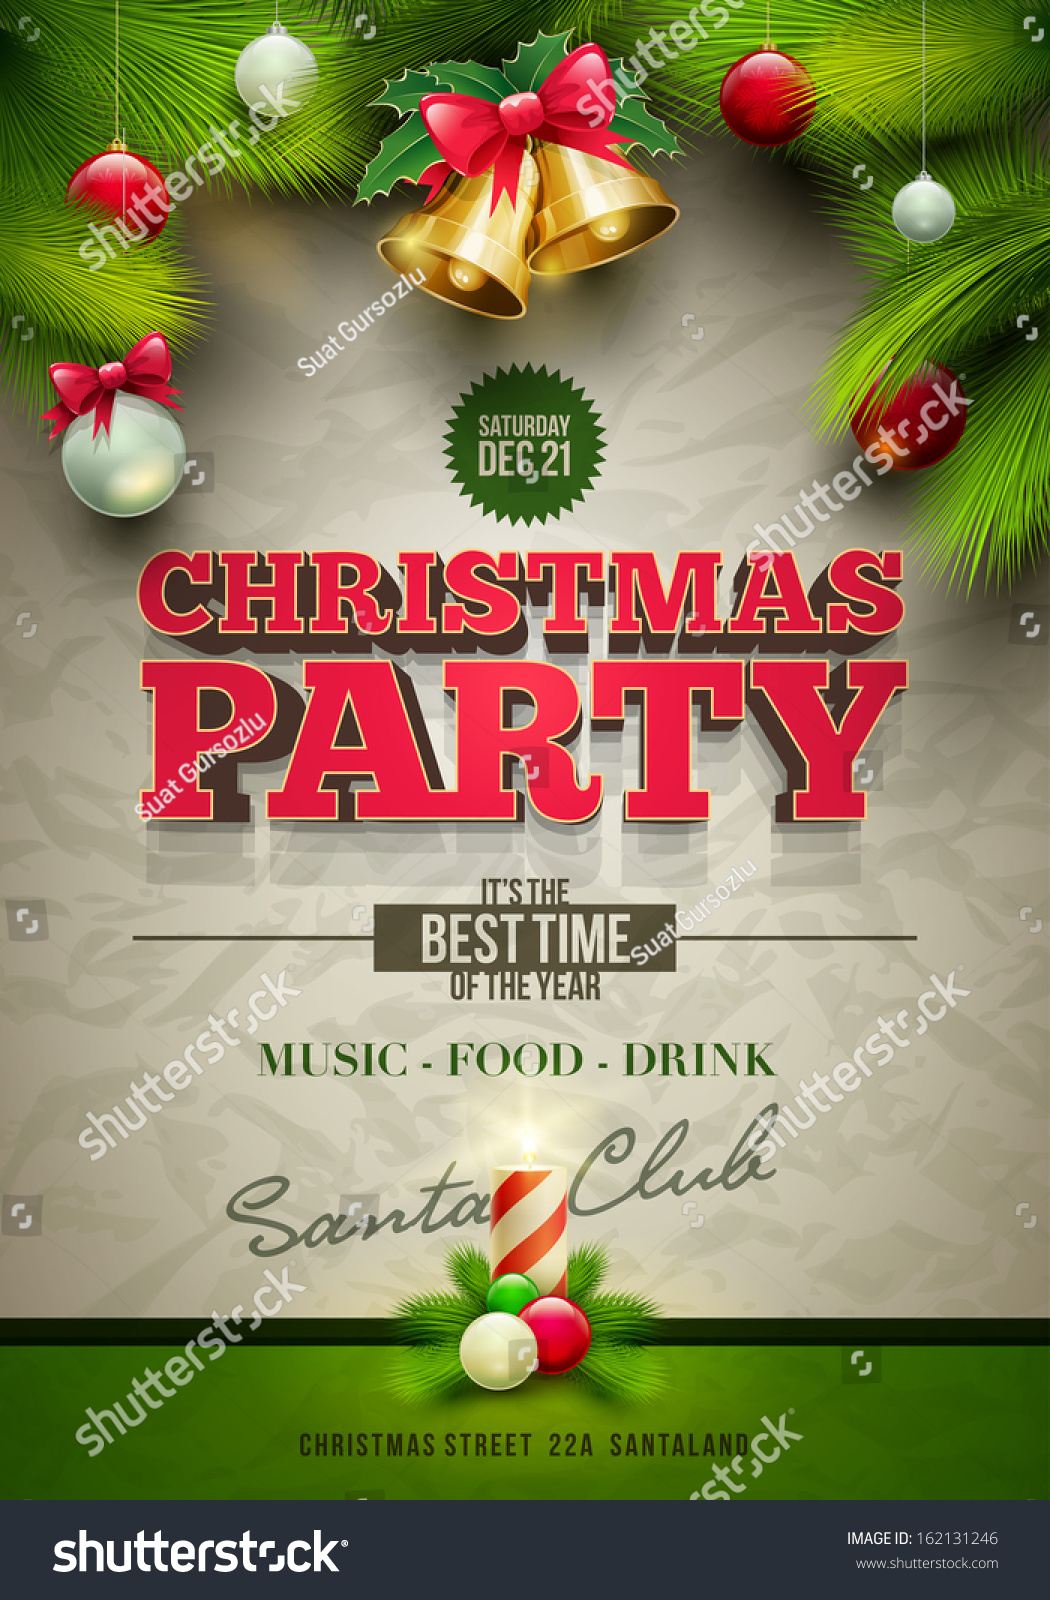 vector christmas party design template elements are layered save to a lightbox